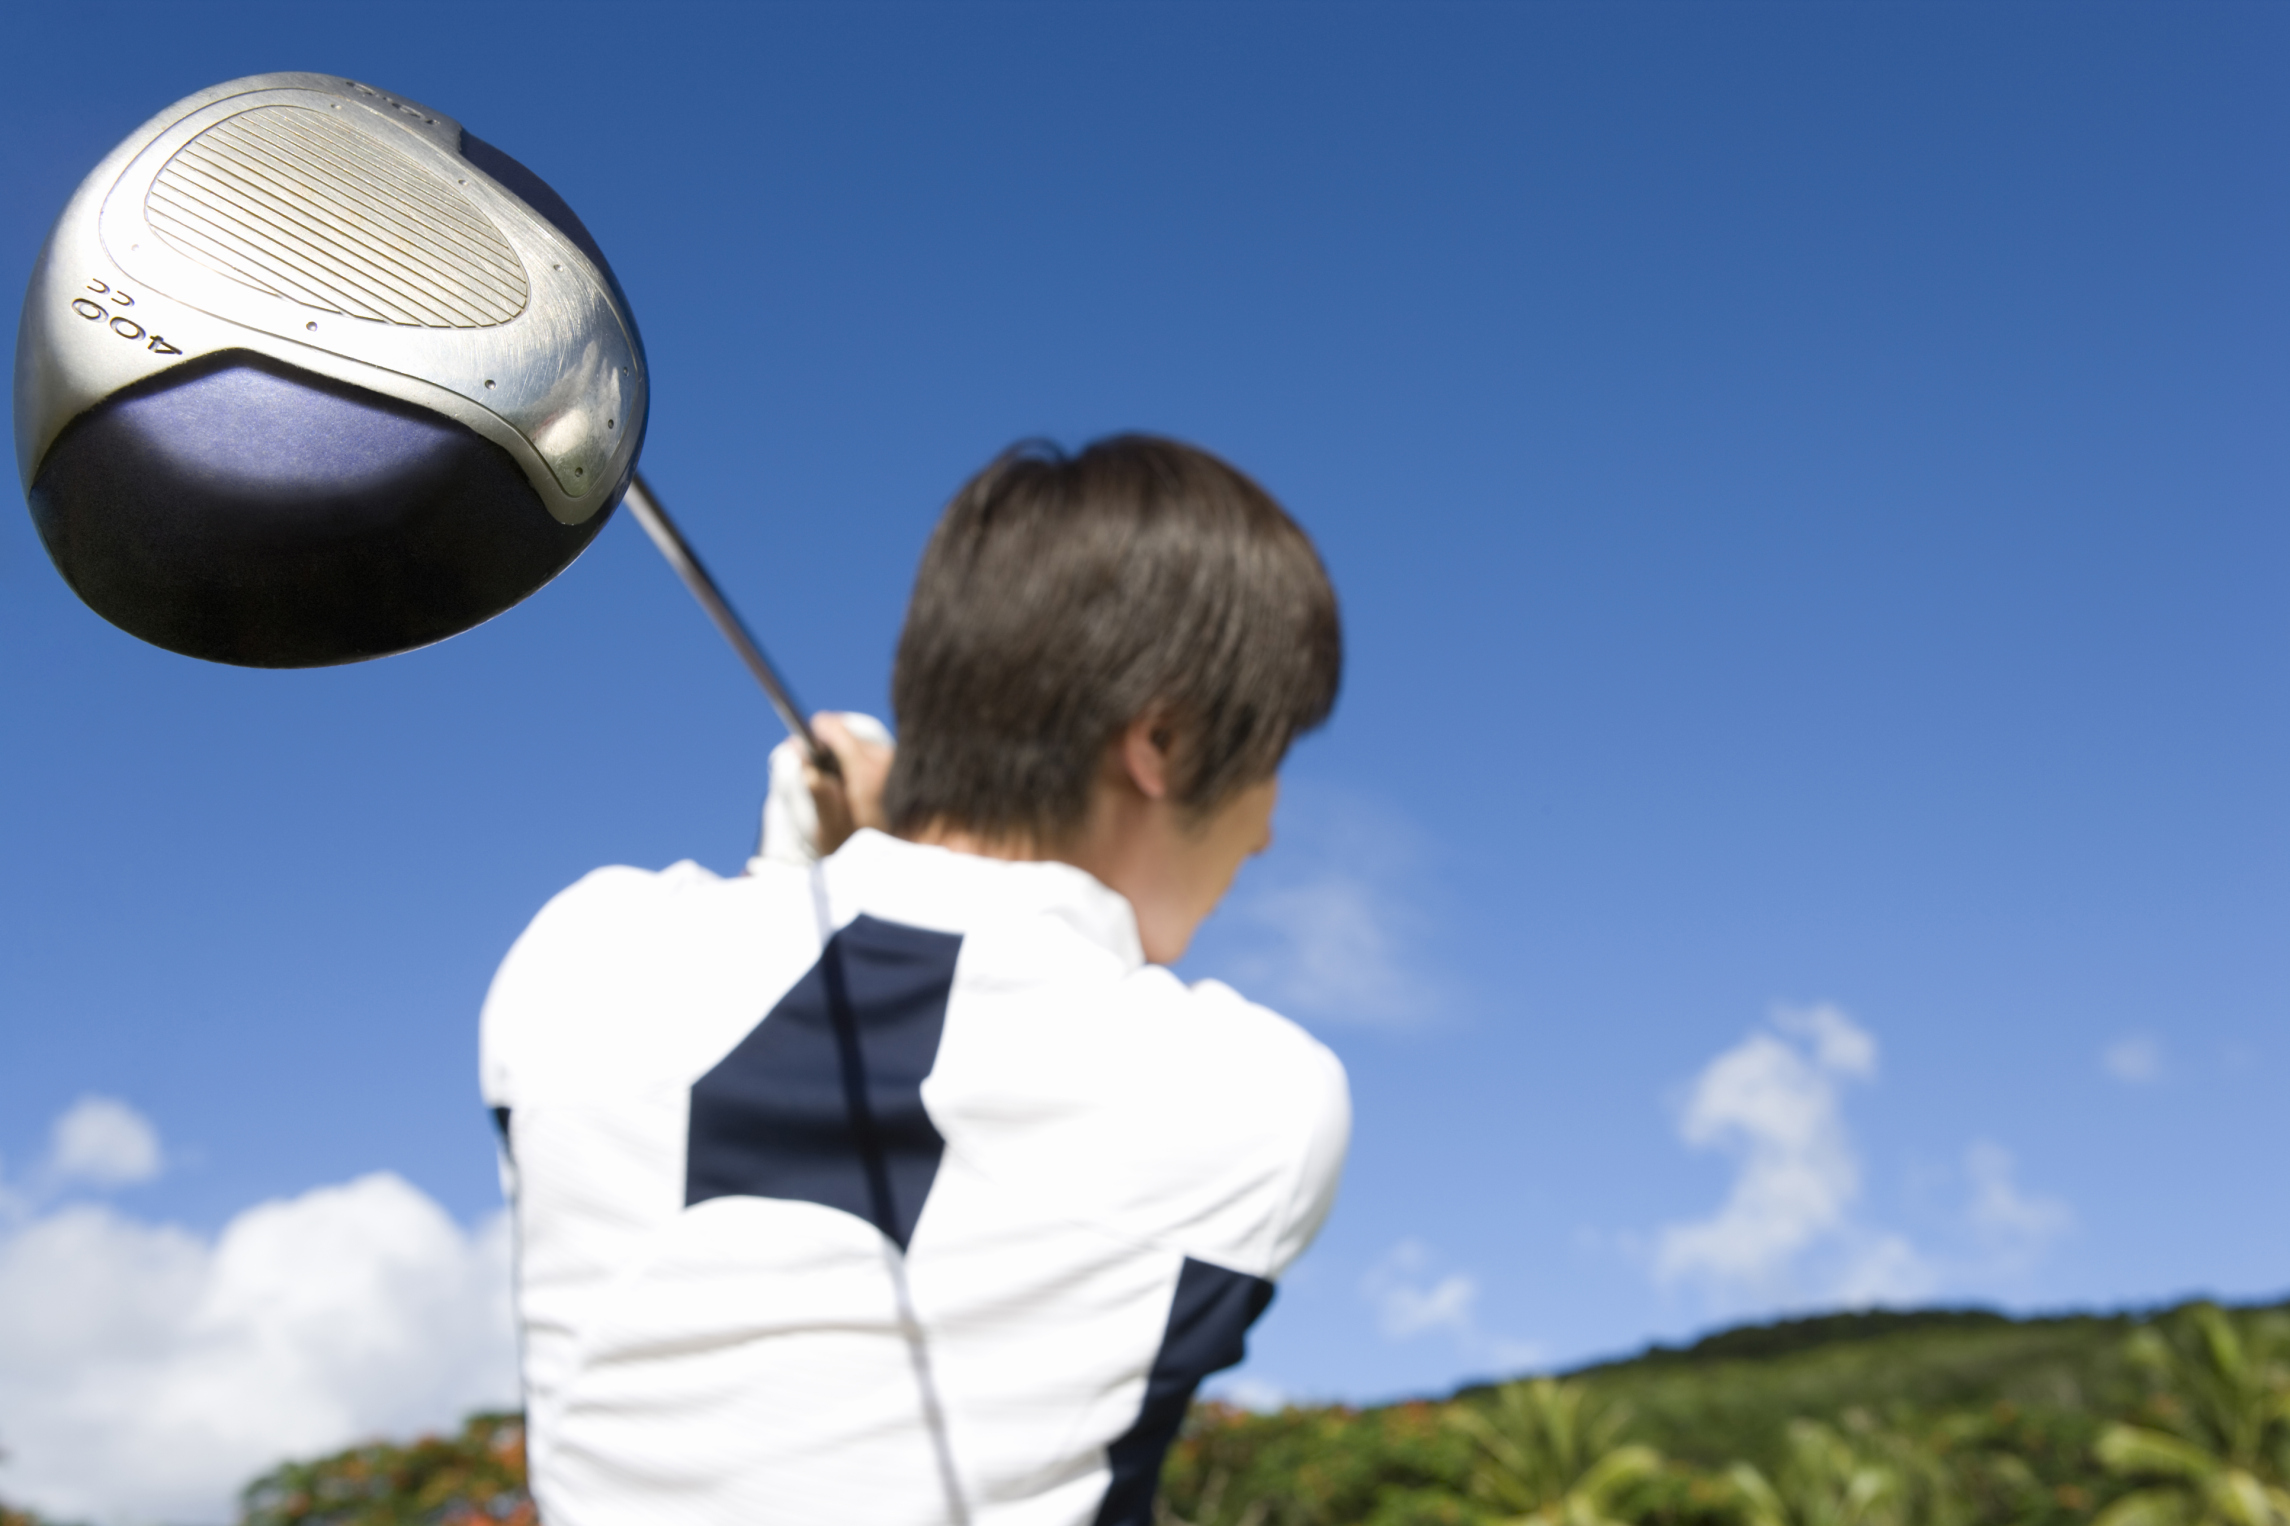 What Is the Proper Wrist Action for a Golf Swing?